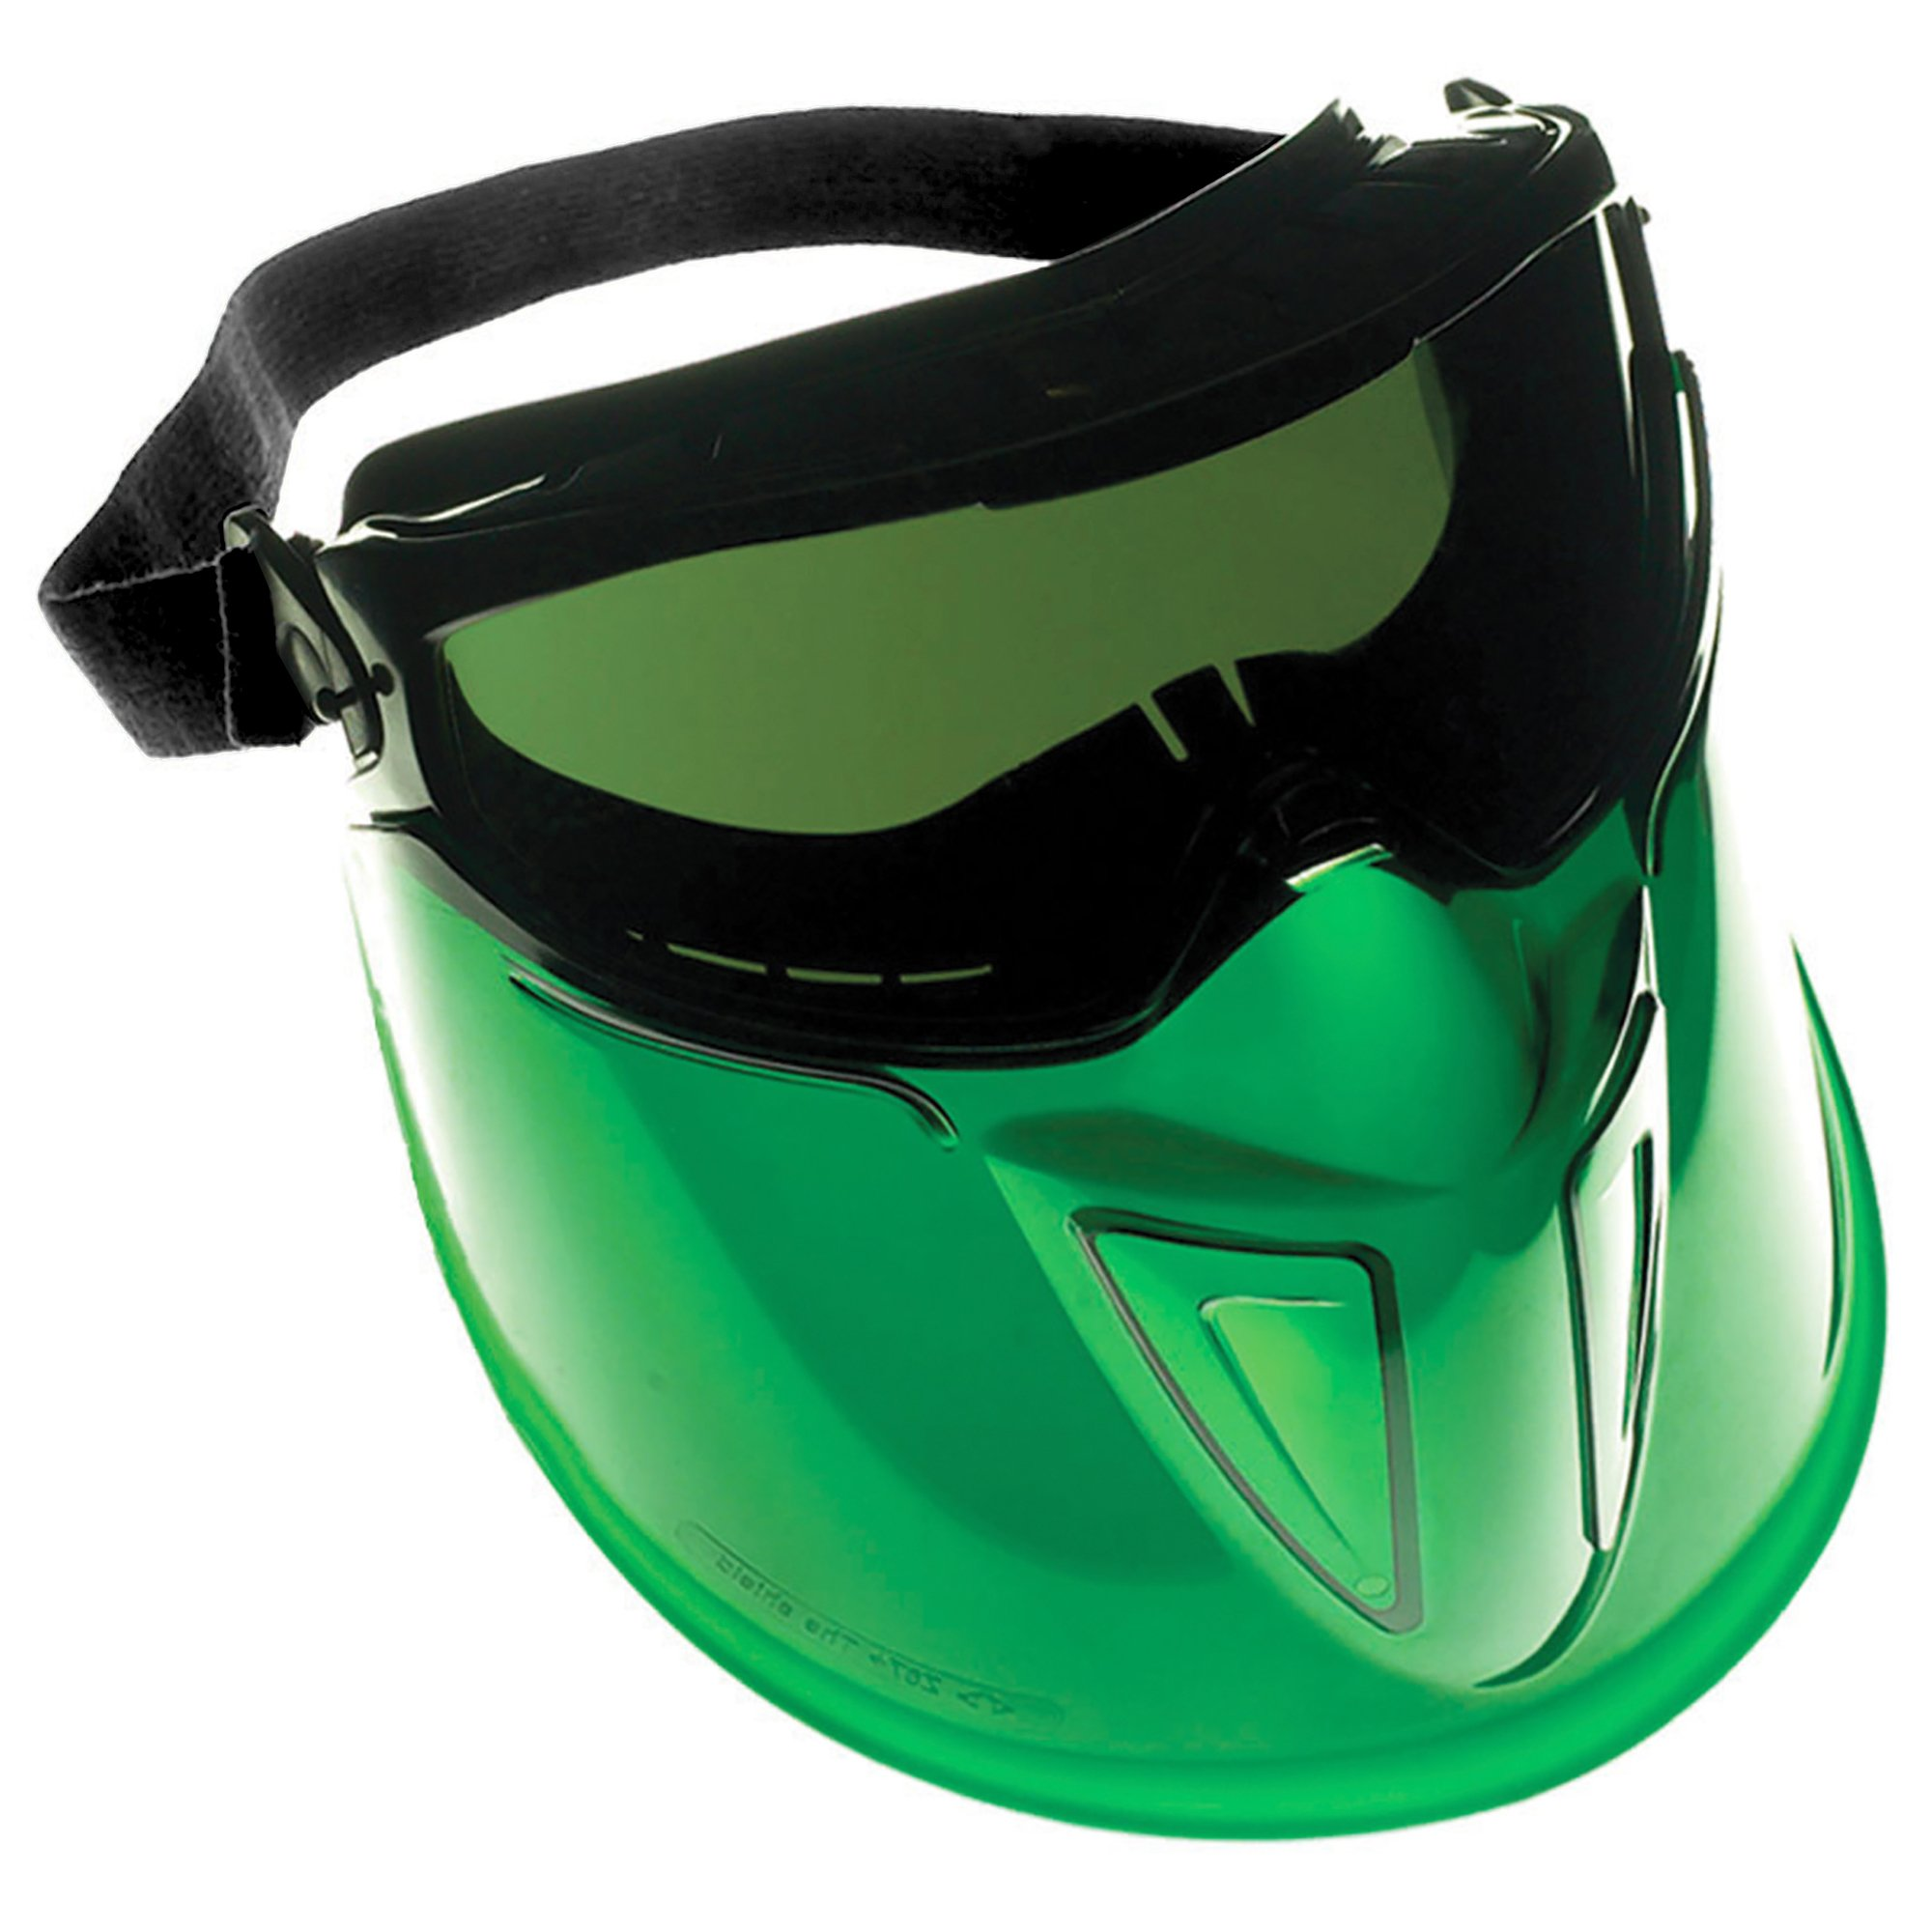 """Jackson Safety V90 """"The Shield"""" Safety Goggles with Face Shield (18631), IRUV Shade 3.0 Anti-Fog Lens with Black Frame, 6 Pairs / Package"""